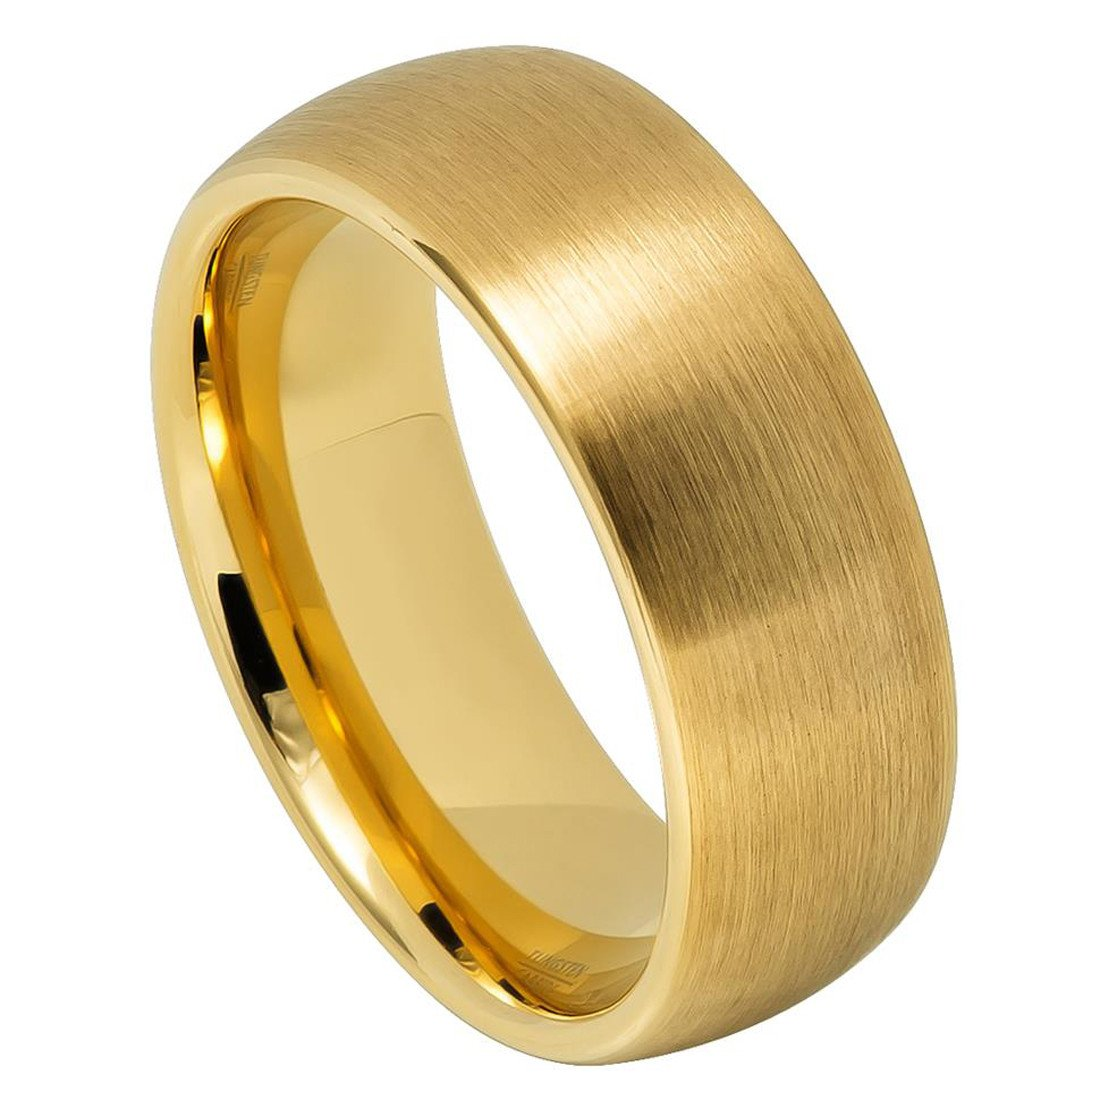 Bridal & Wedding Party Jewelry Titanium 14k Yellow Inlay Flat 8mm Wedding Ring Band Size 8.50 Precious Metal 100% High Quality Materials Jewelry & Watches